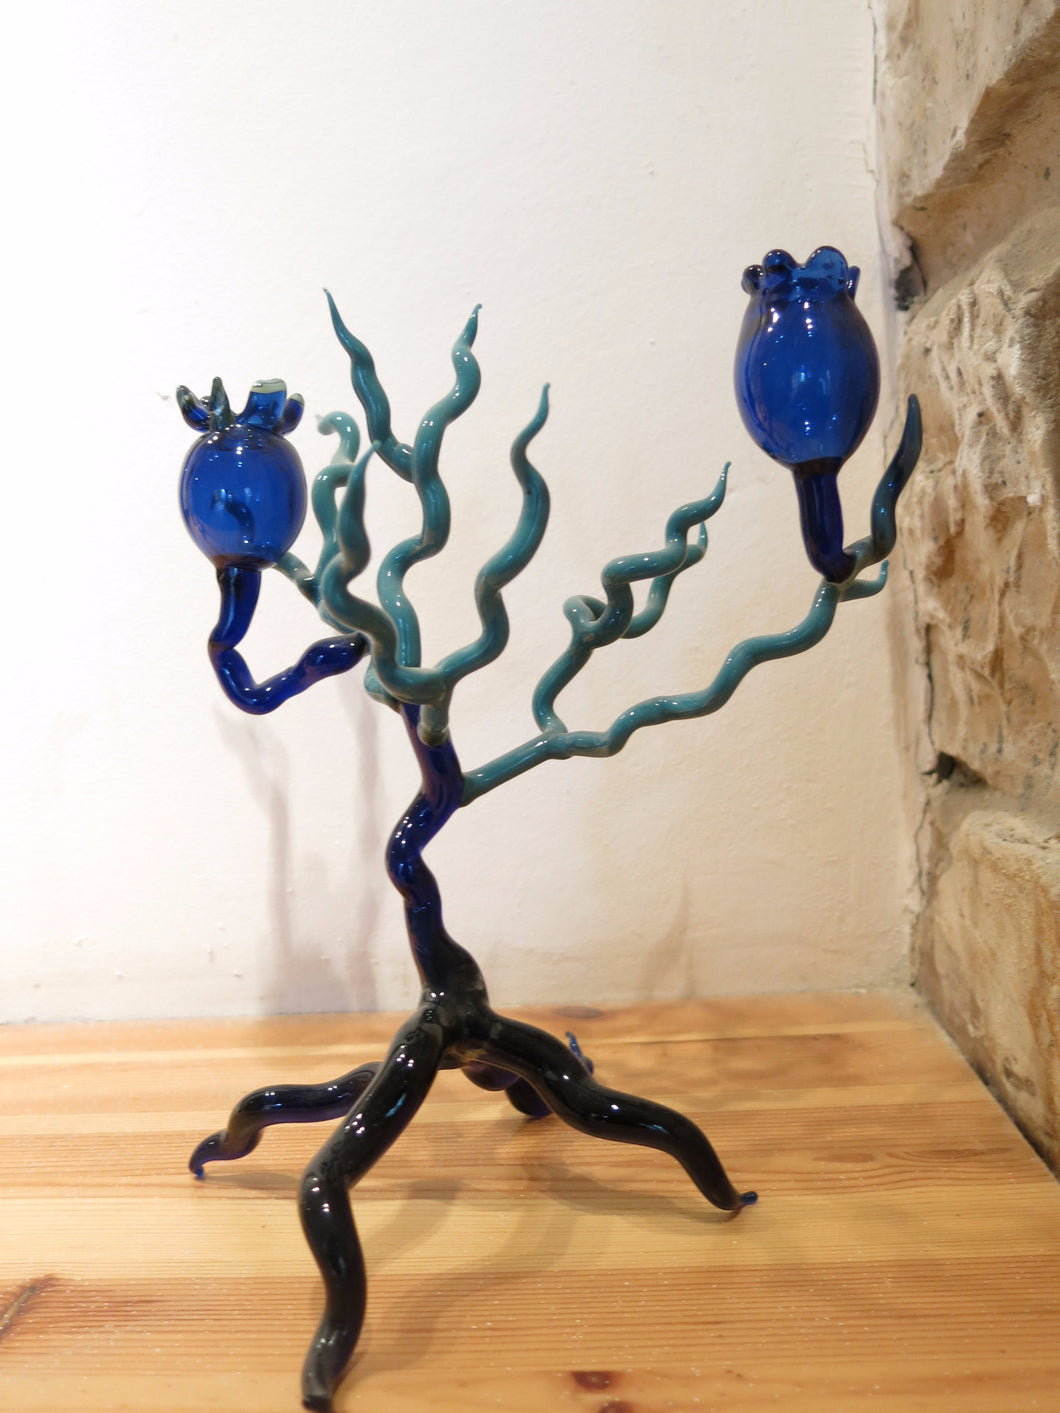 Blue Pomegranate Shabbat Candlesticks